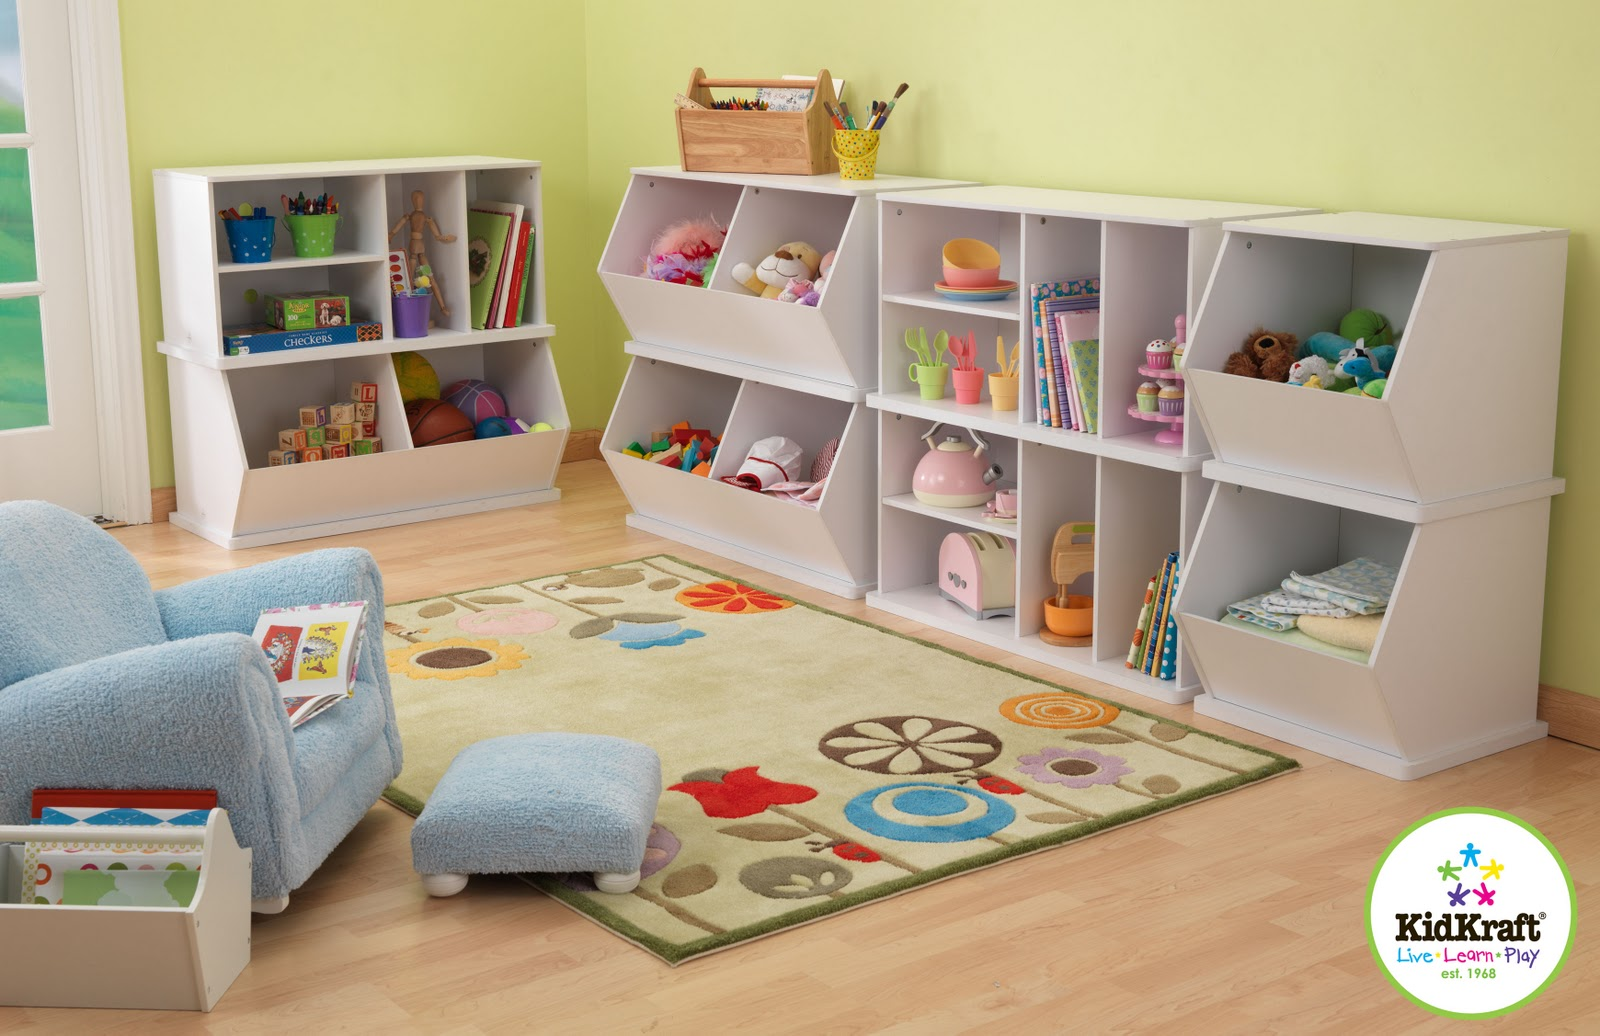 10 Types Of Toy Organizers For Kids Bedrooms And Playrooms: KidKraft Toys & Furniture: Brand New! KidKraft Storage